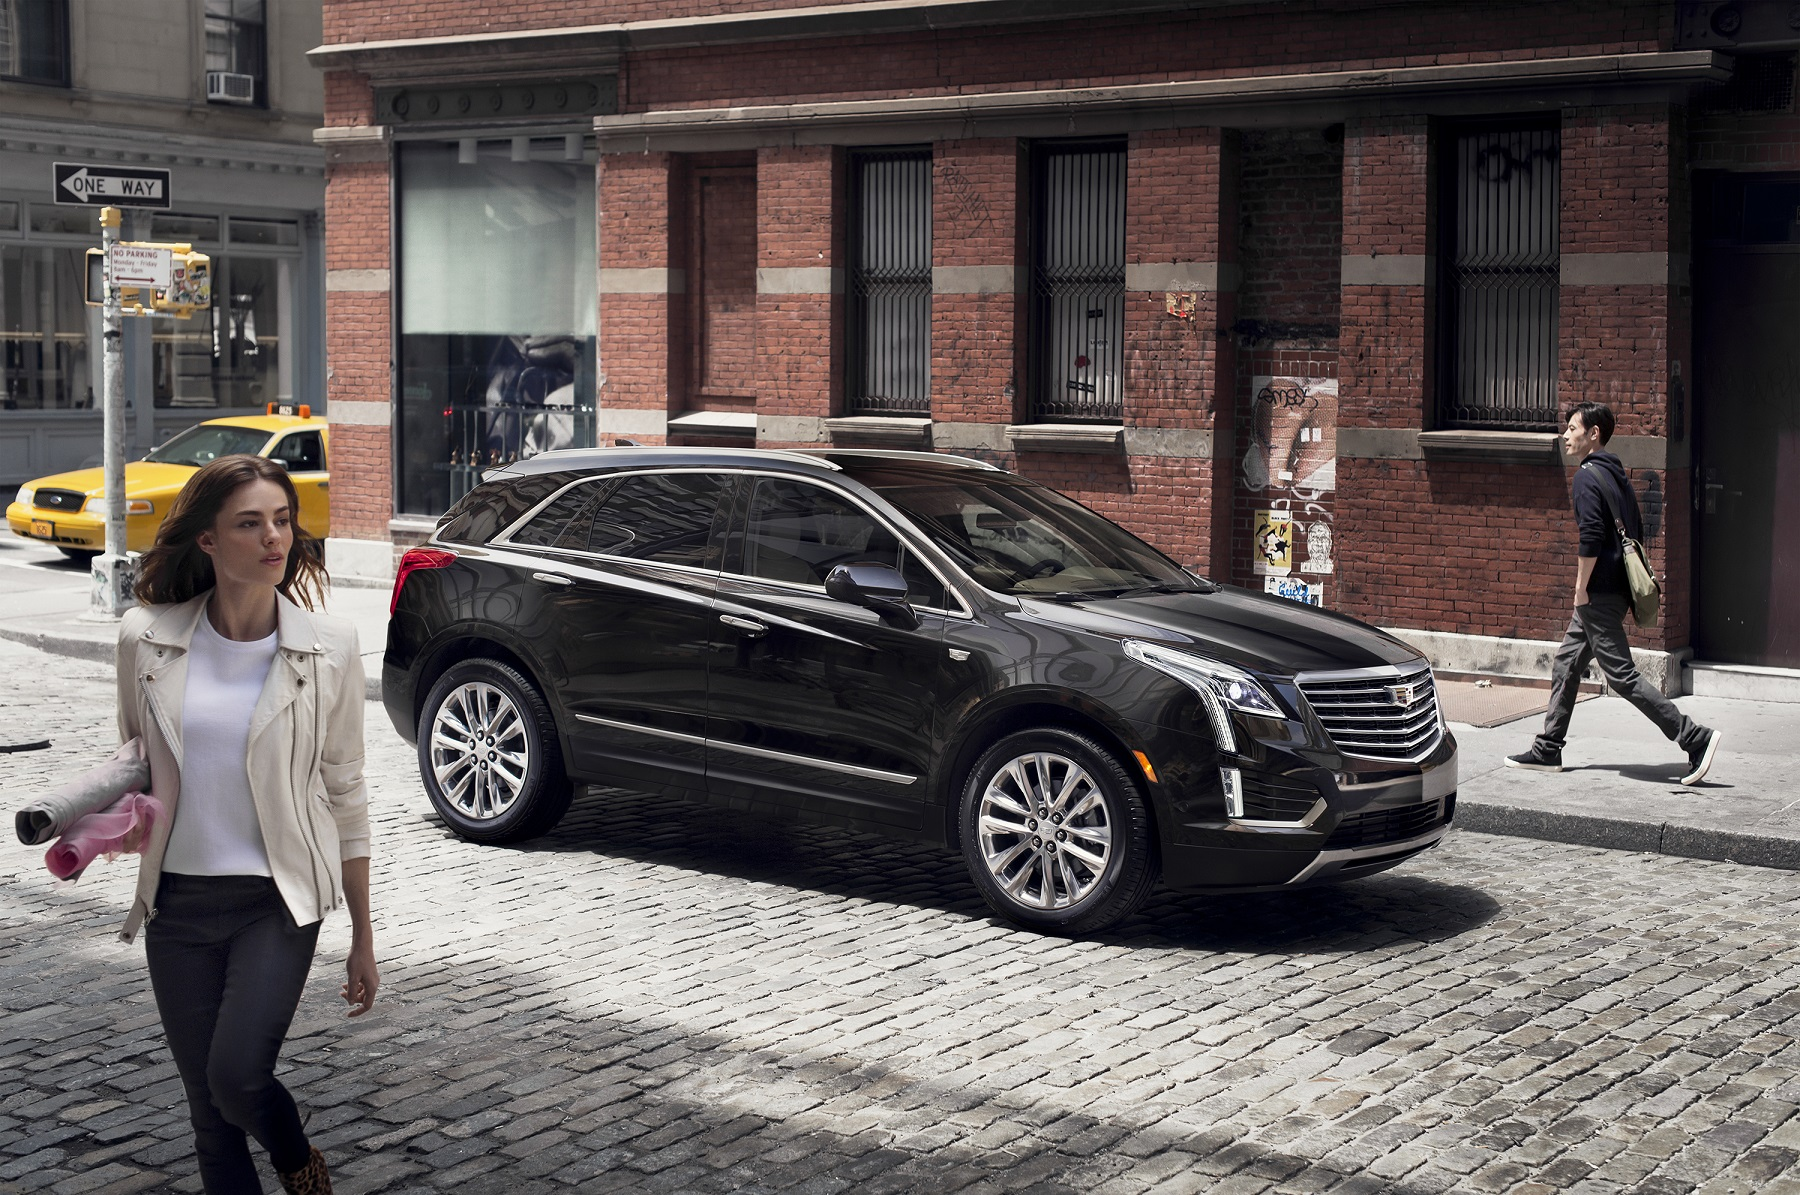 Cadillac XT5 Crossover Touring New for 2017 New on Wheels